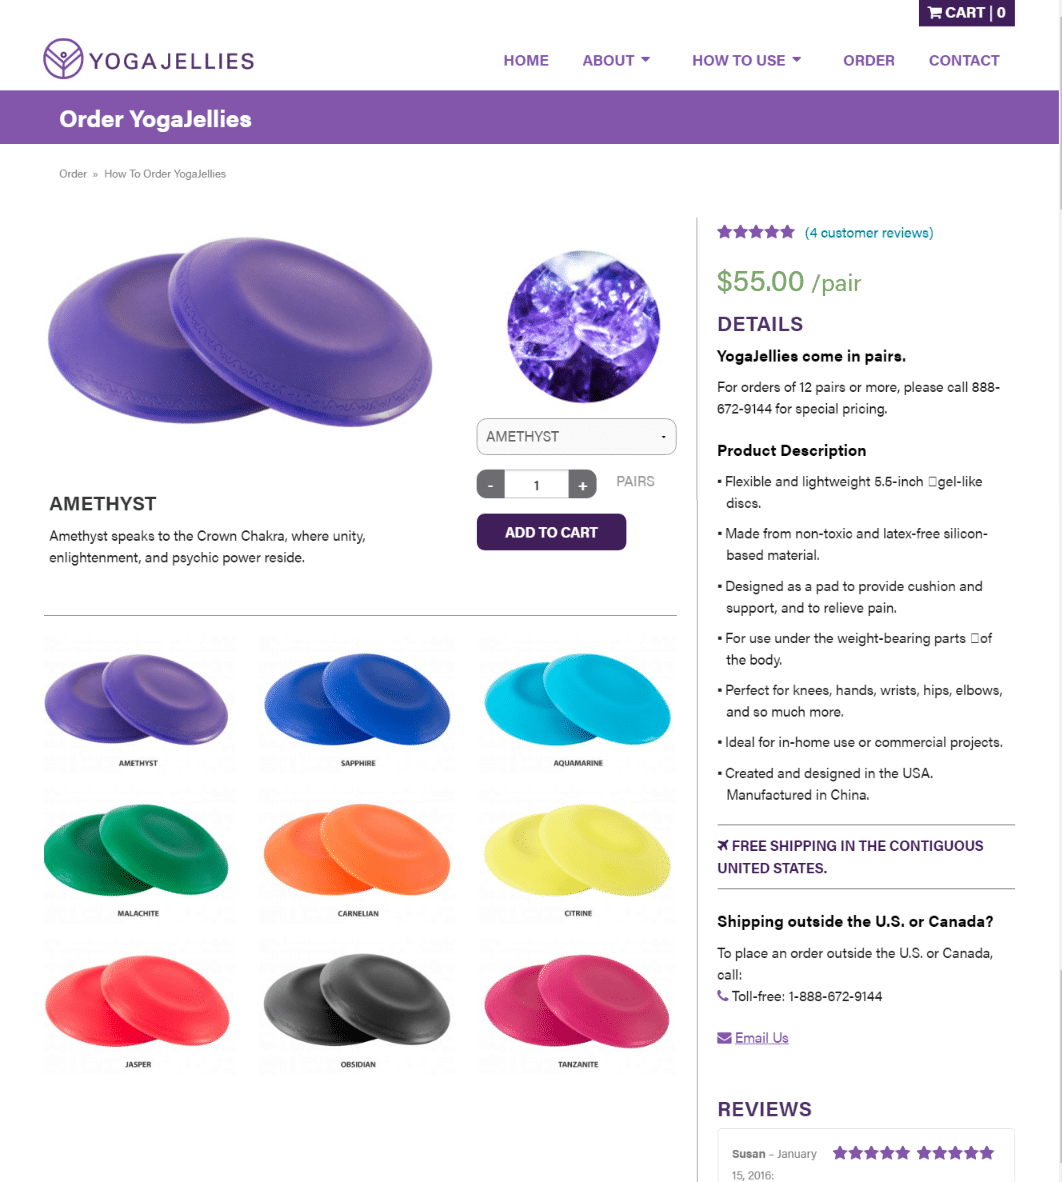 Yoga Jellies Shop Page